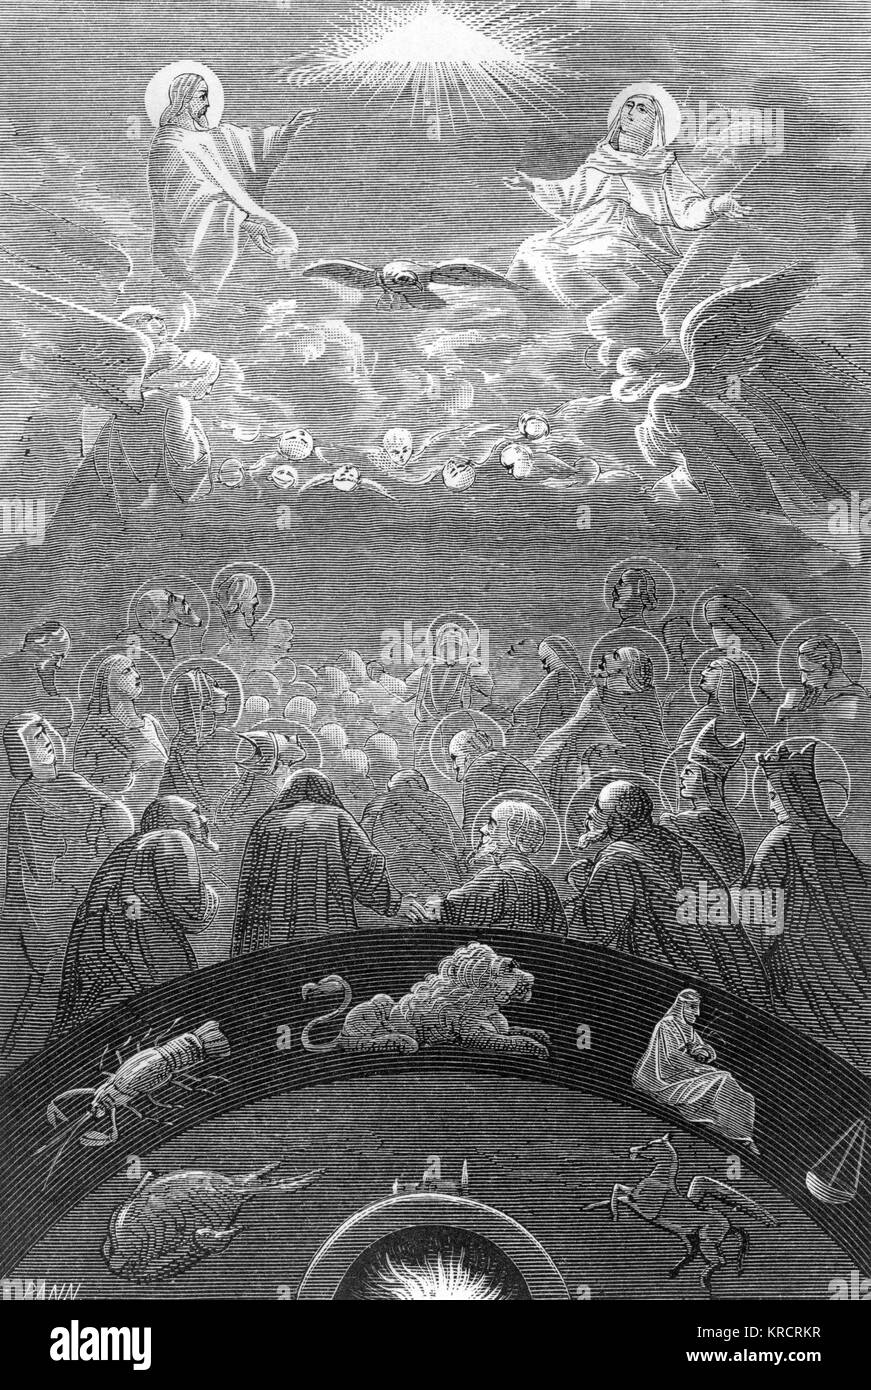 The Christian concept of the heavens Date: medieval - Stock Image